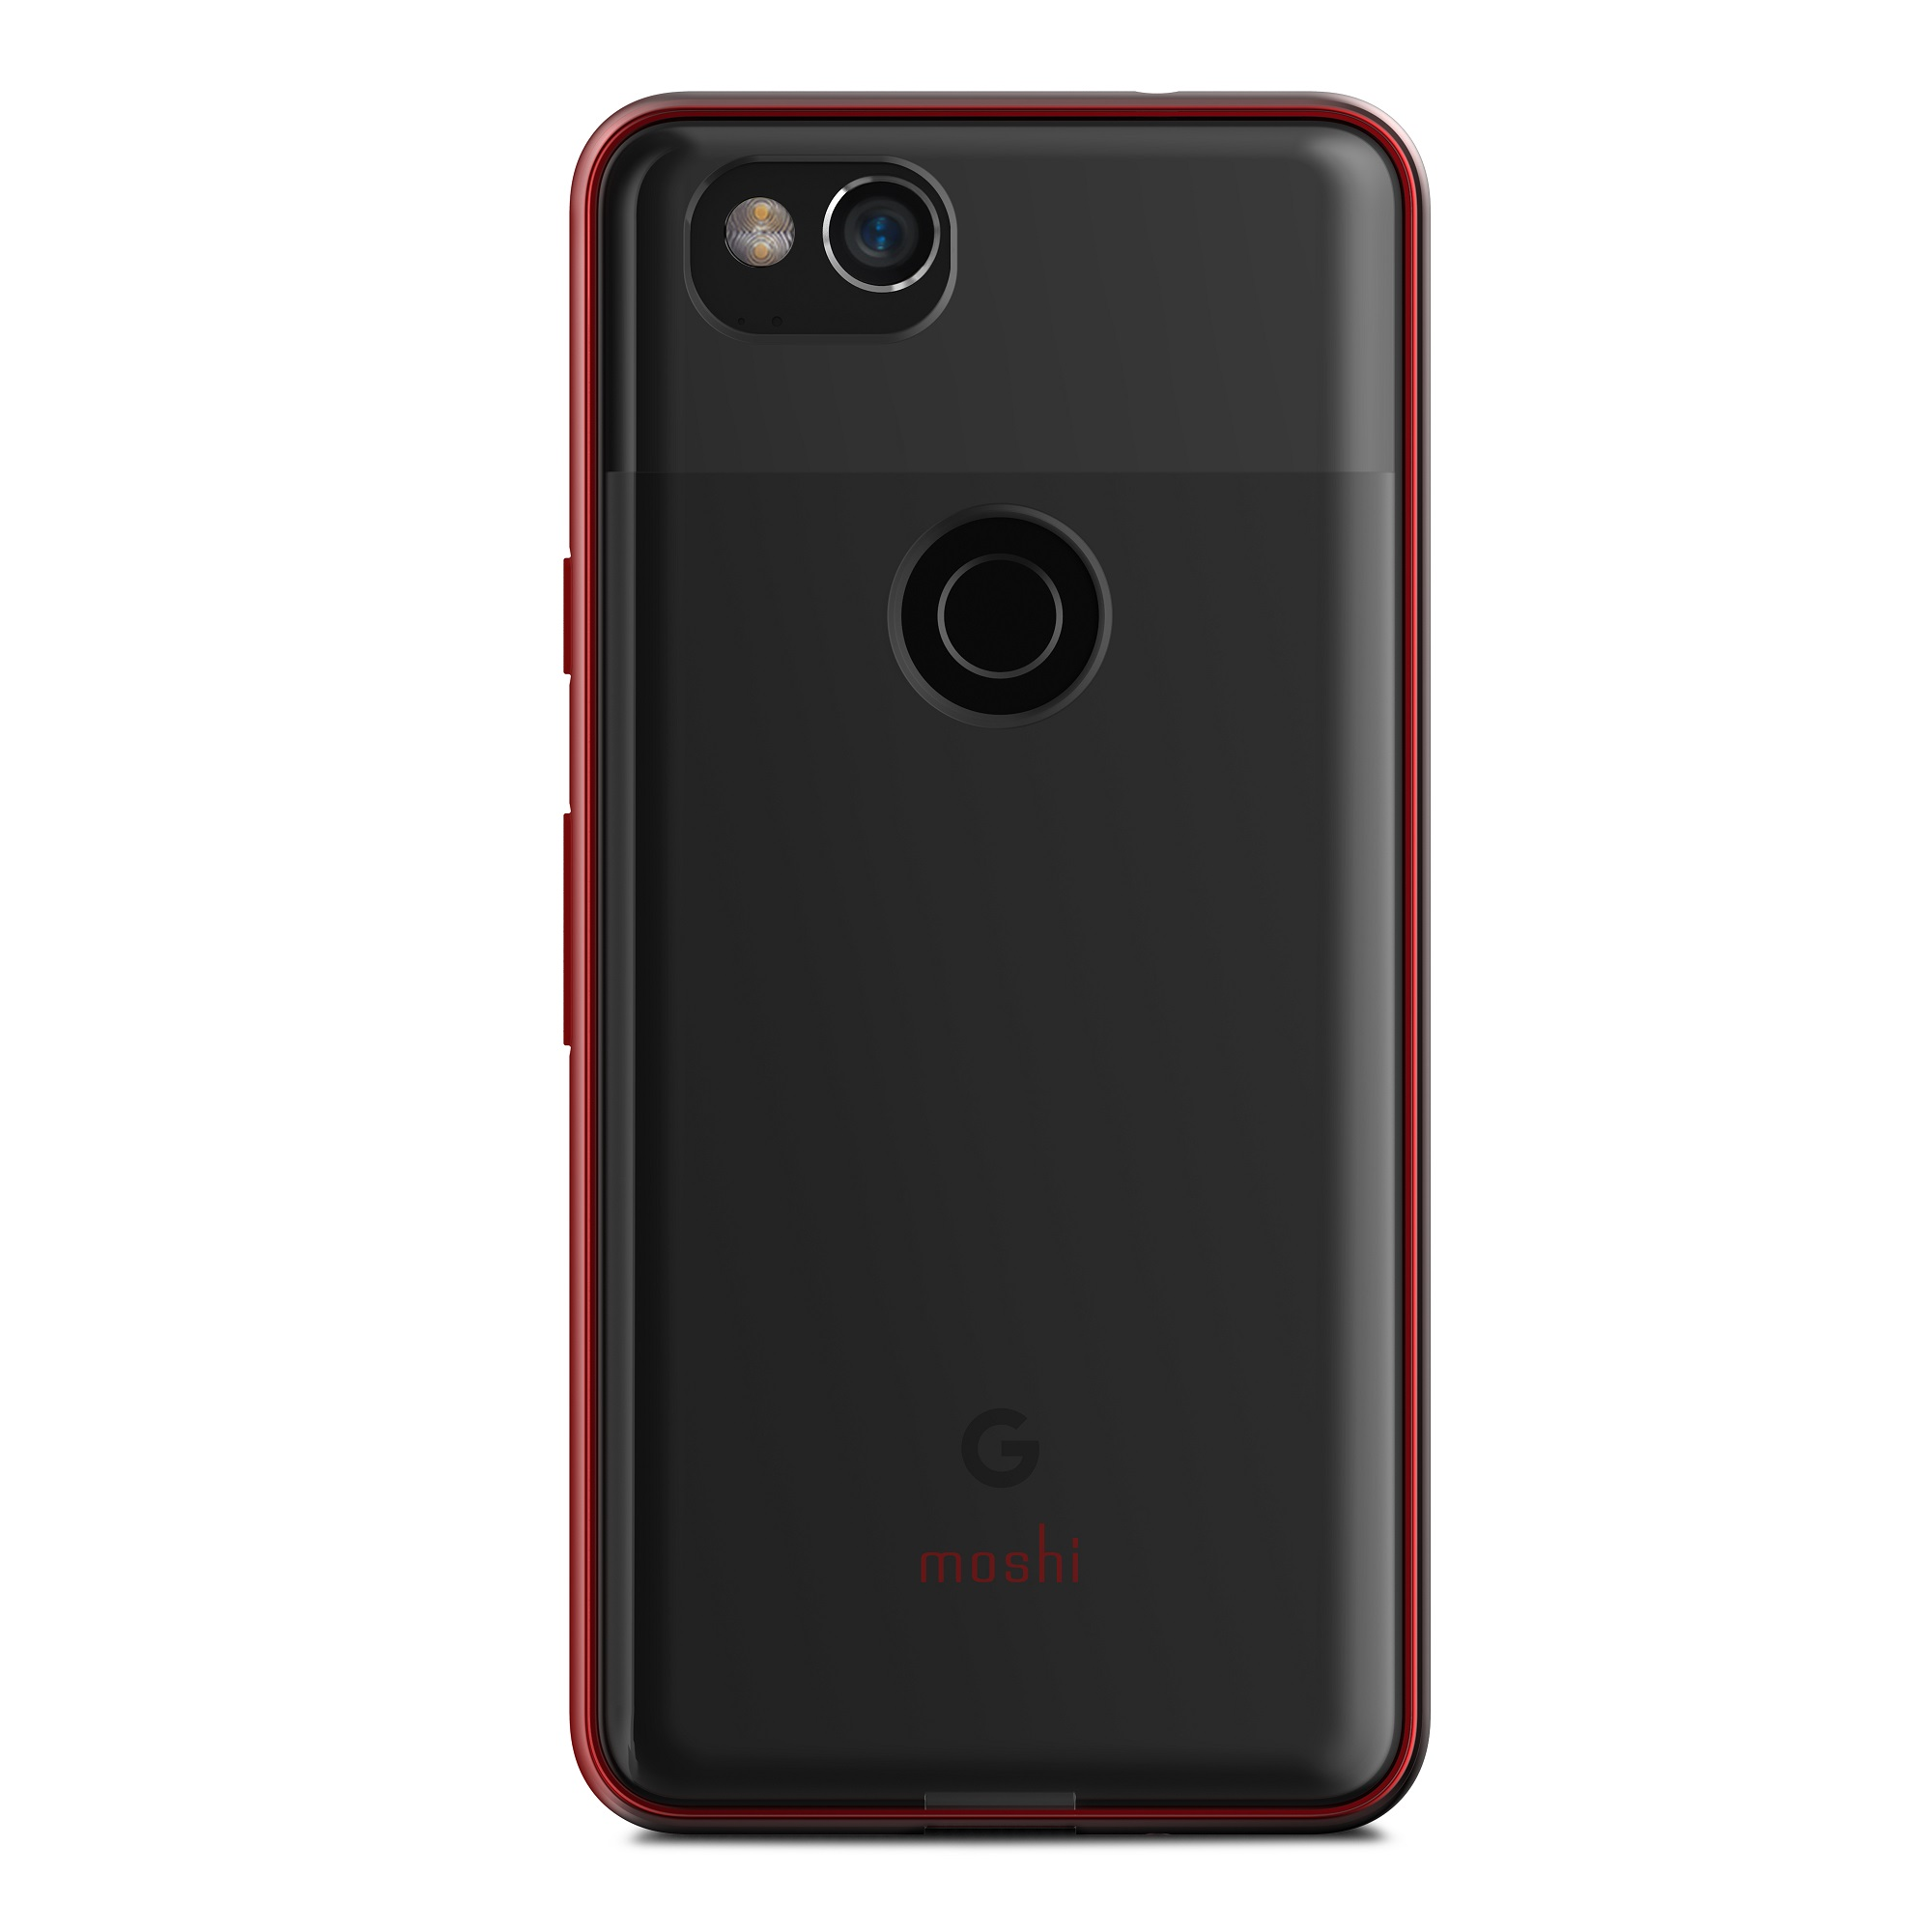 Moshi Vitros Case for Google Pixel 2